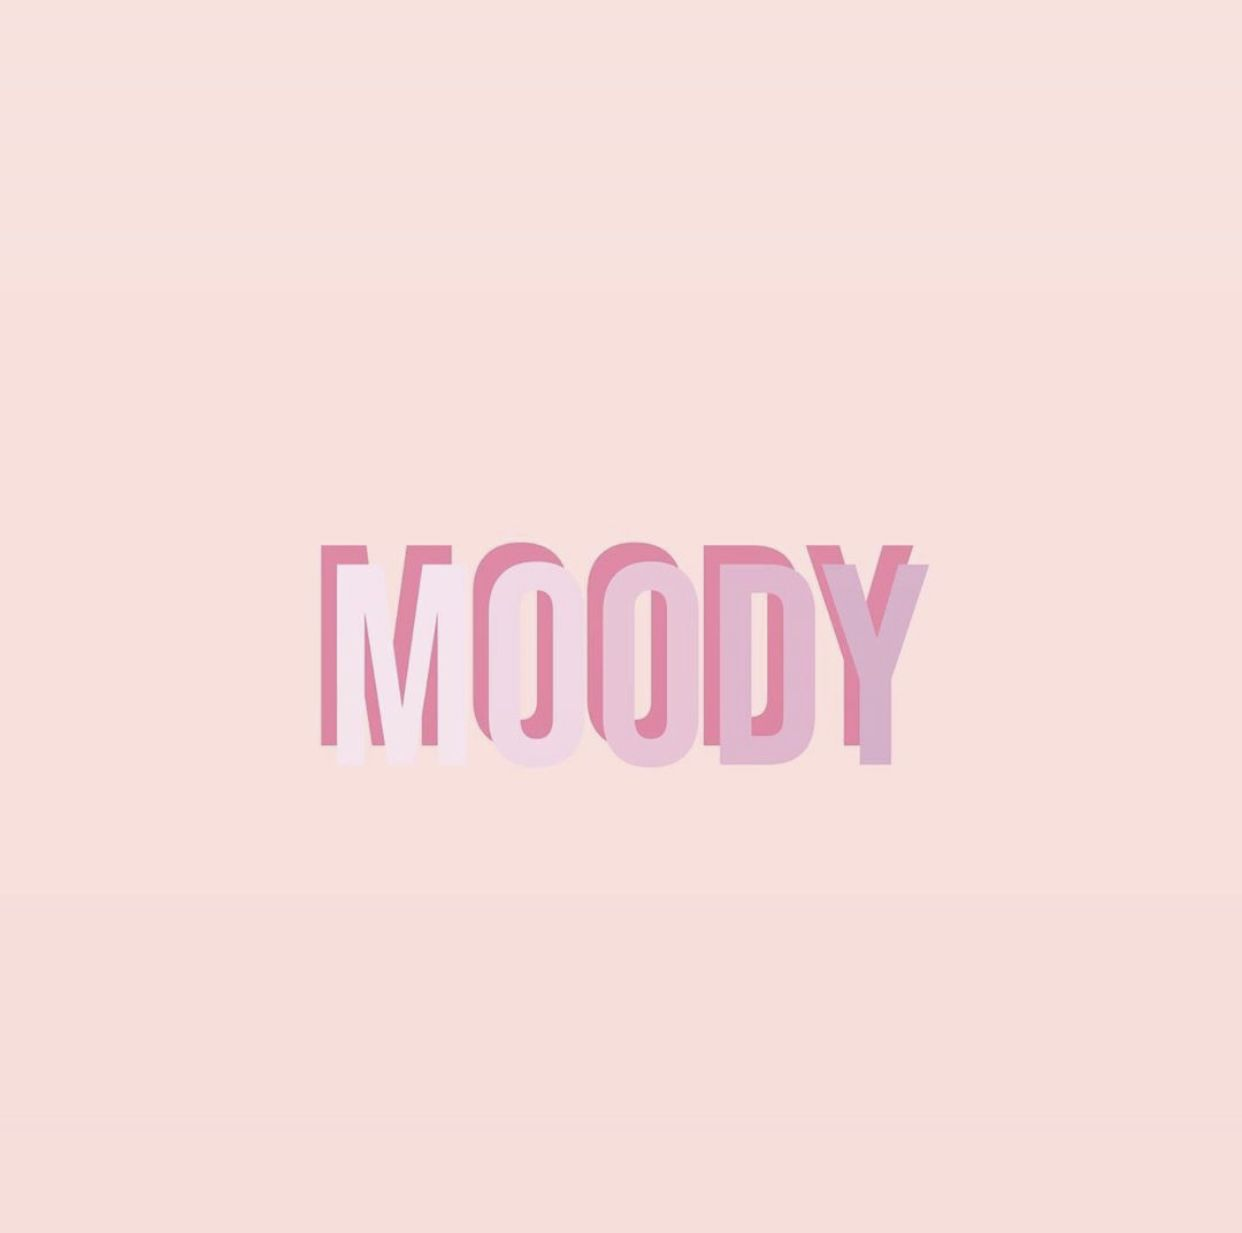 Moody Motivation Quote Vsco Girl Poster Bedroom Wall Collage Wall Prints Quotes Picture Collage Wall